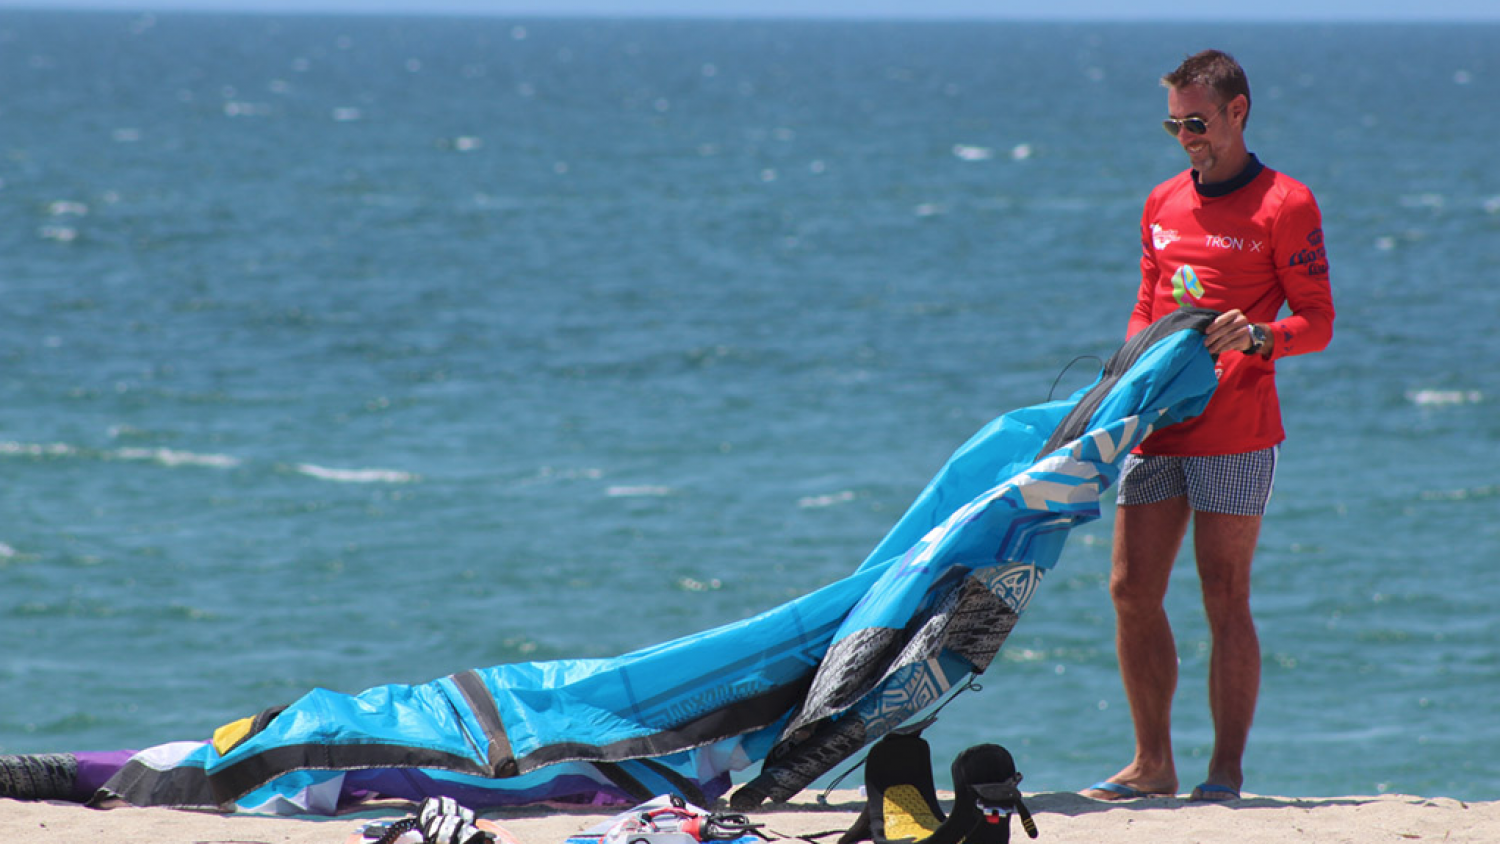 Five Quick Facts About Kitesurfing